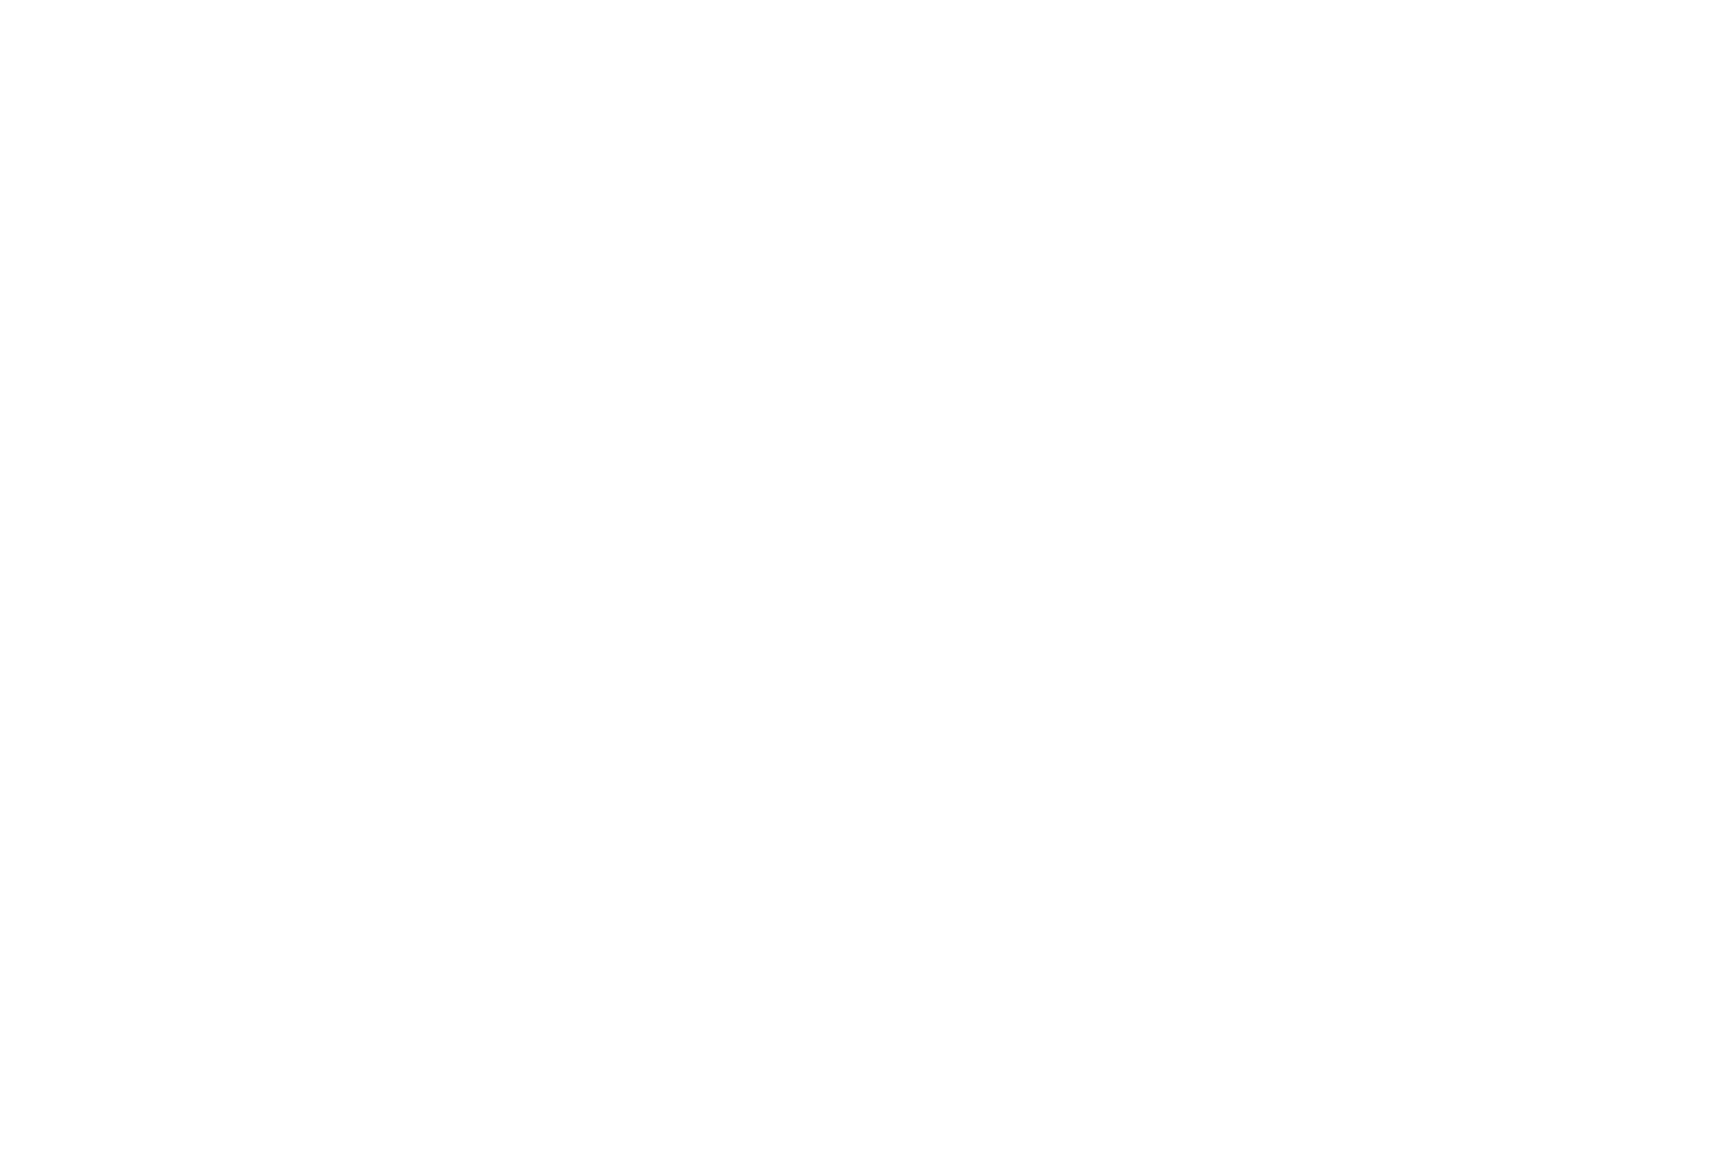 OFFICIAL SELECTION - LA Music Video Awards - 2019(1).png